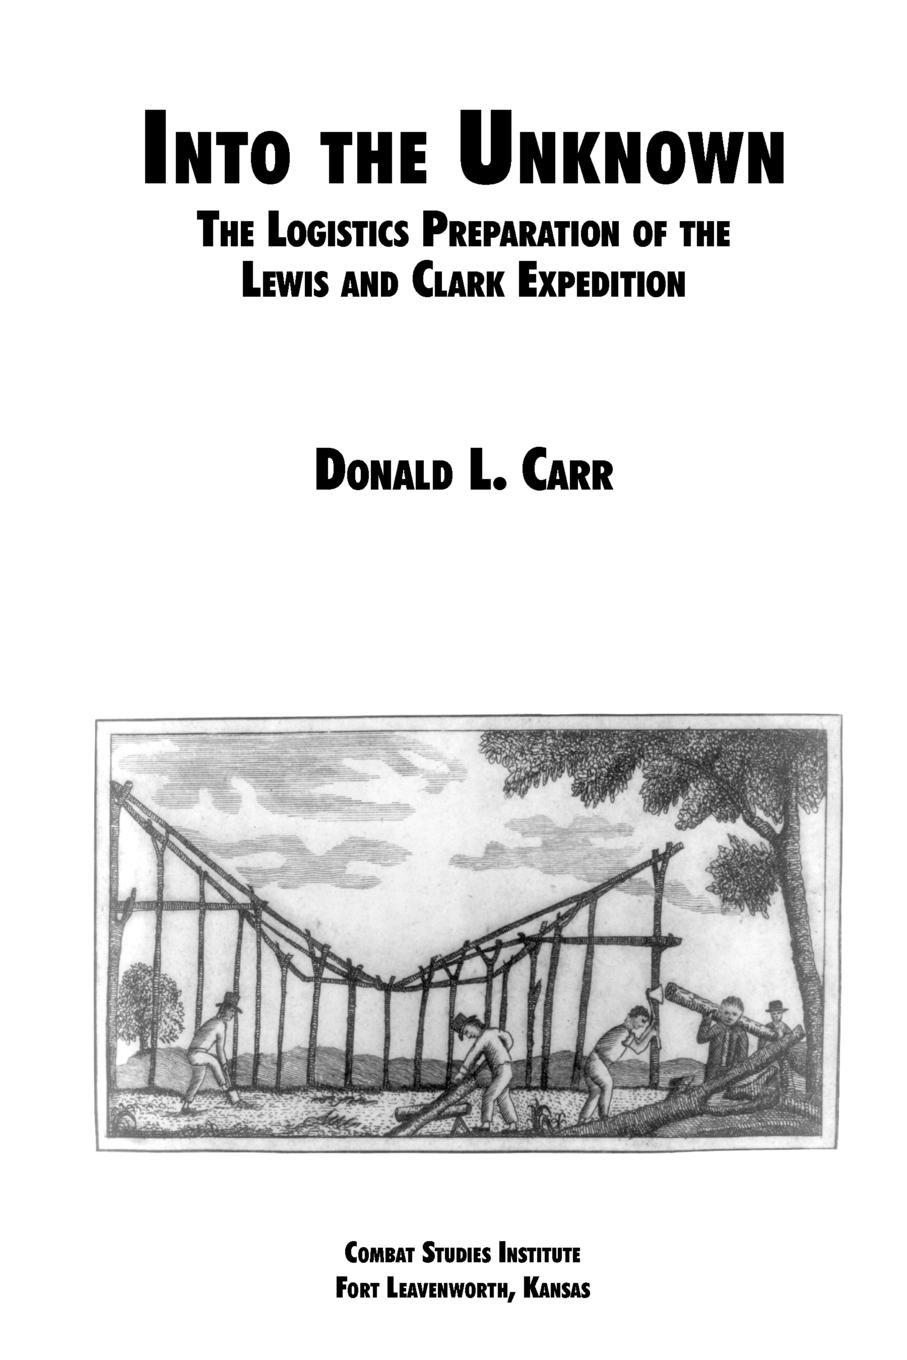 Фото - Donald L. Carr, Combat Studies Institute Into the Unknown. The Logistics Preparation of the Lewis and Clark Expedition katherine chandler the bird woman of the lewis and clark expedition a supplementary reader for first and second grades